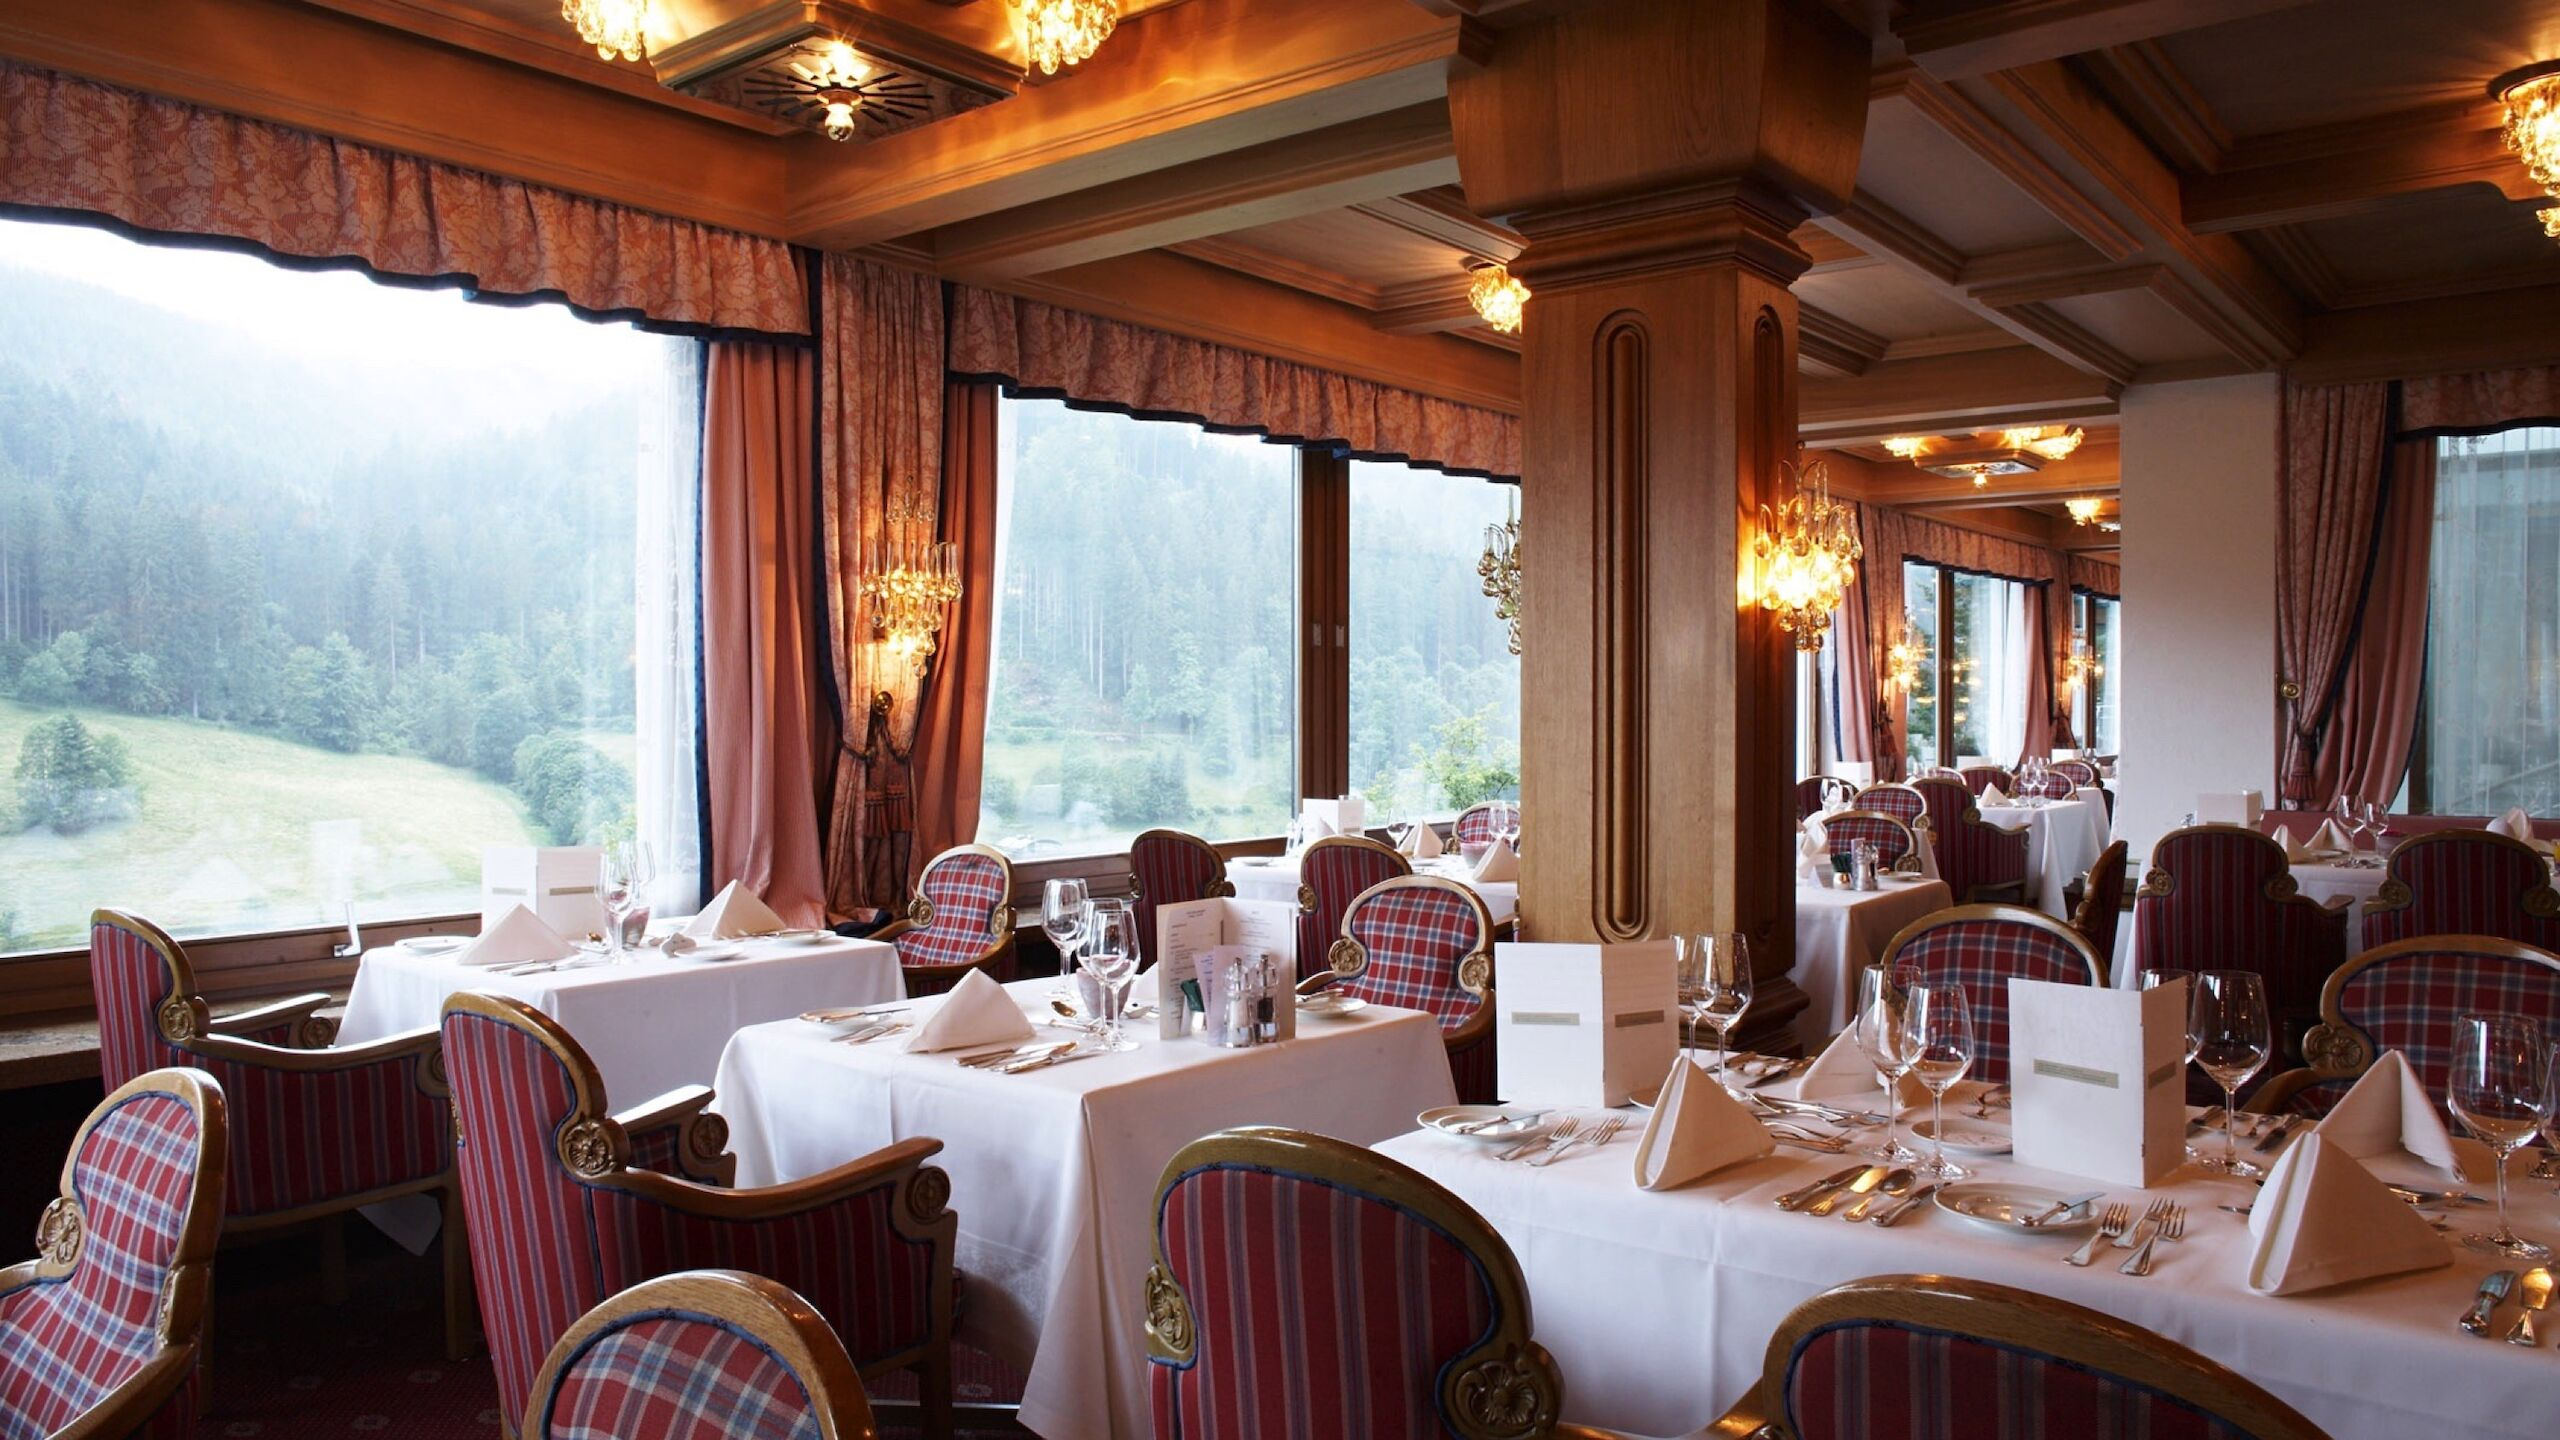 Traube Tonbach Guest Chef in Restaurant Silberberg 1